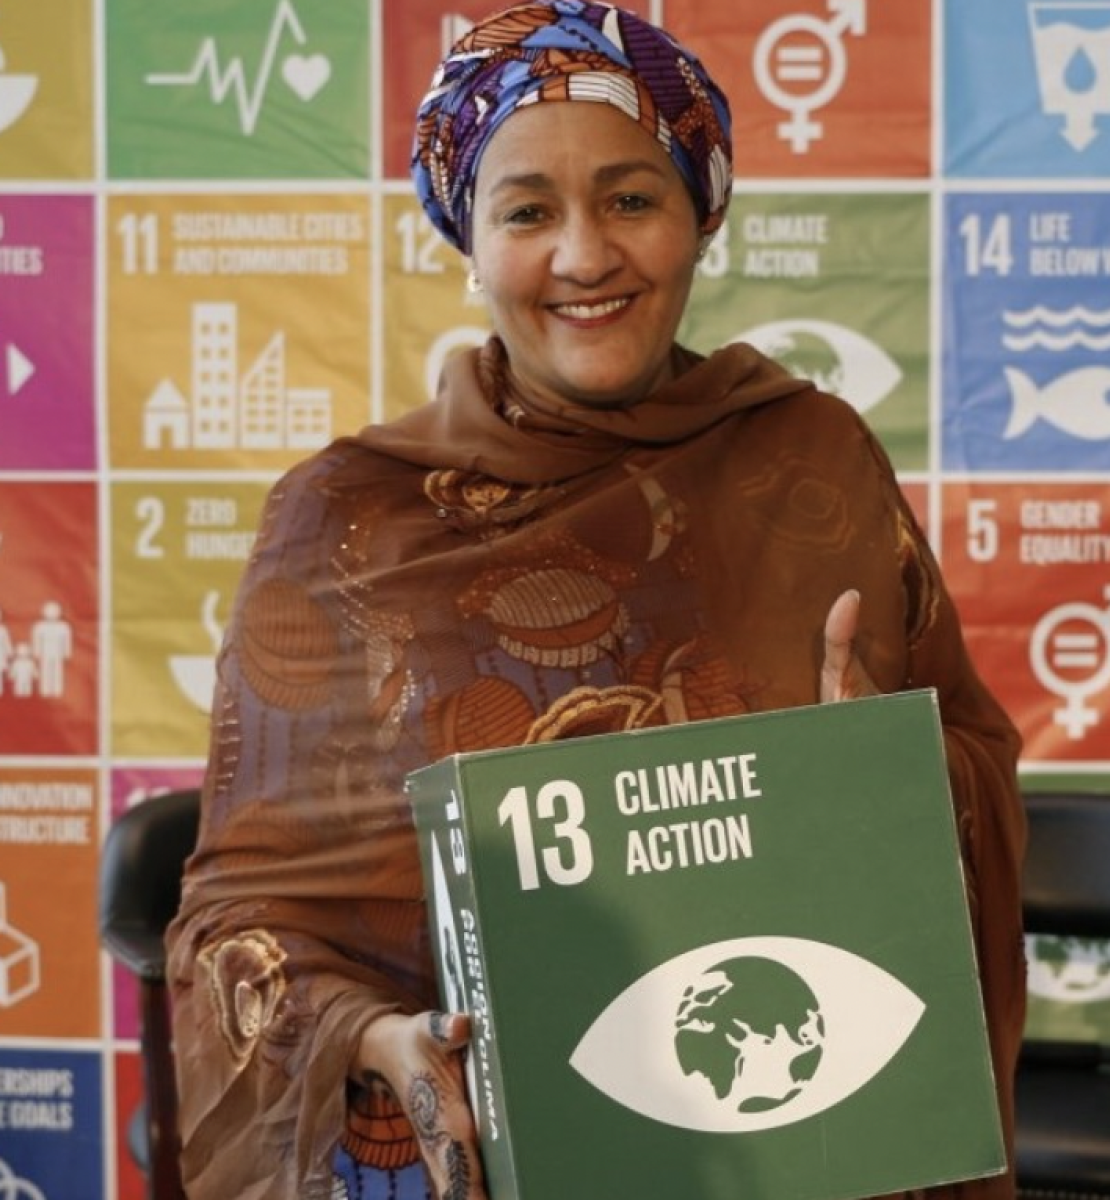 Amina Mohammed, the UN Deputy Secretary General smiles at the camera while holding a green box displaying the words Climate Action in English.